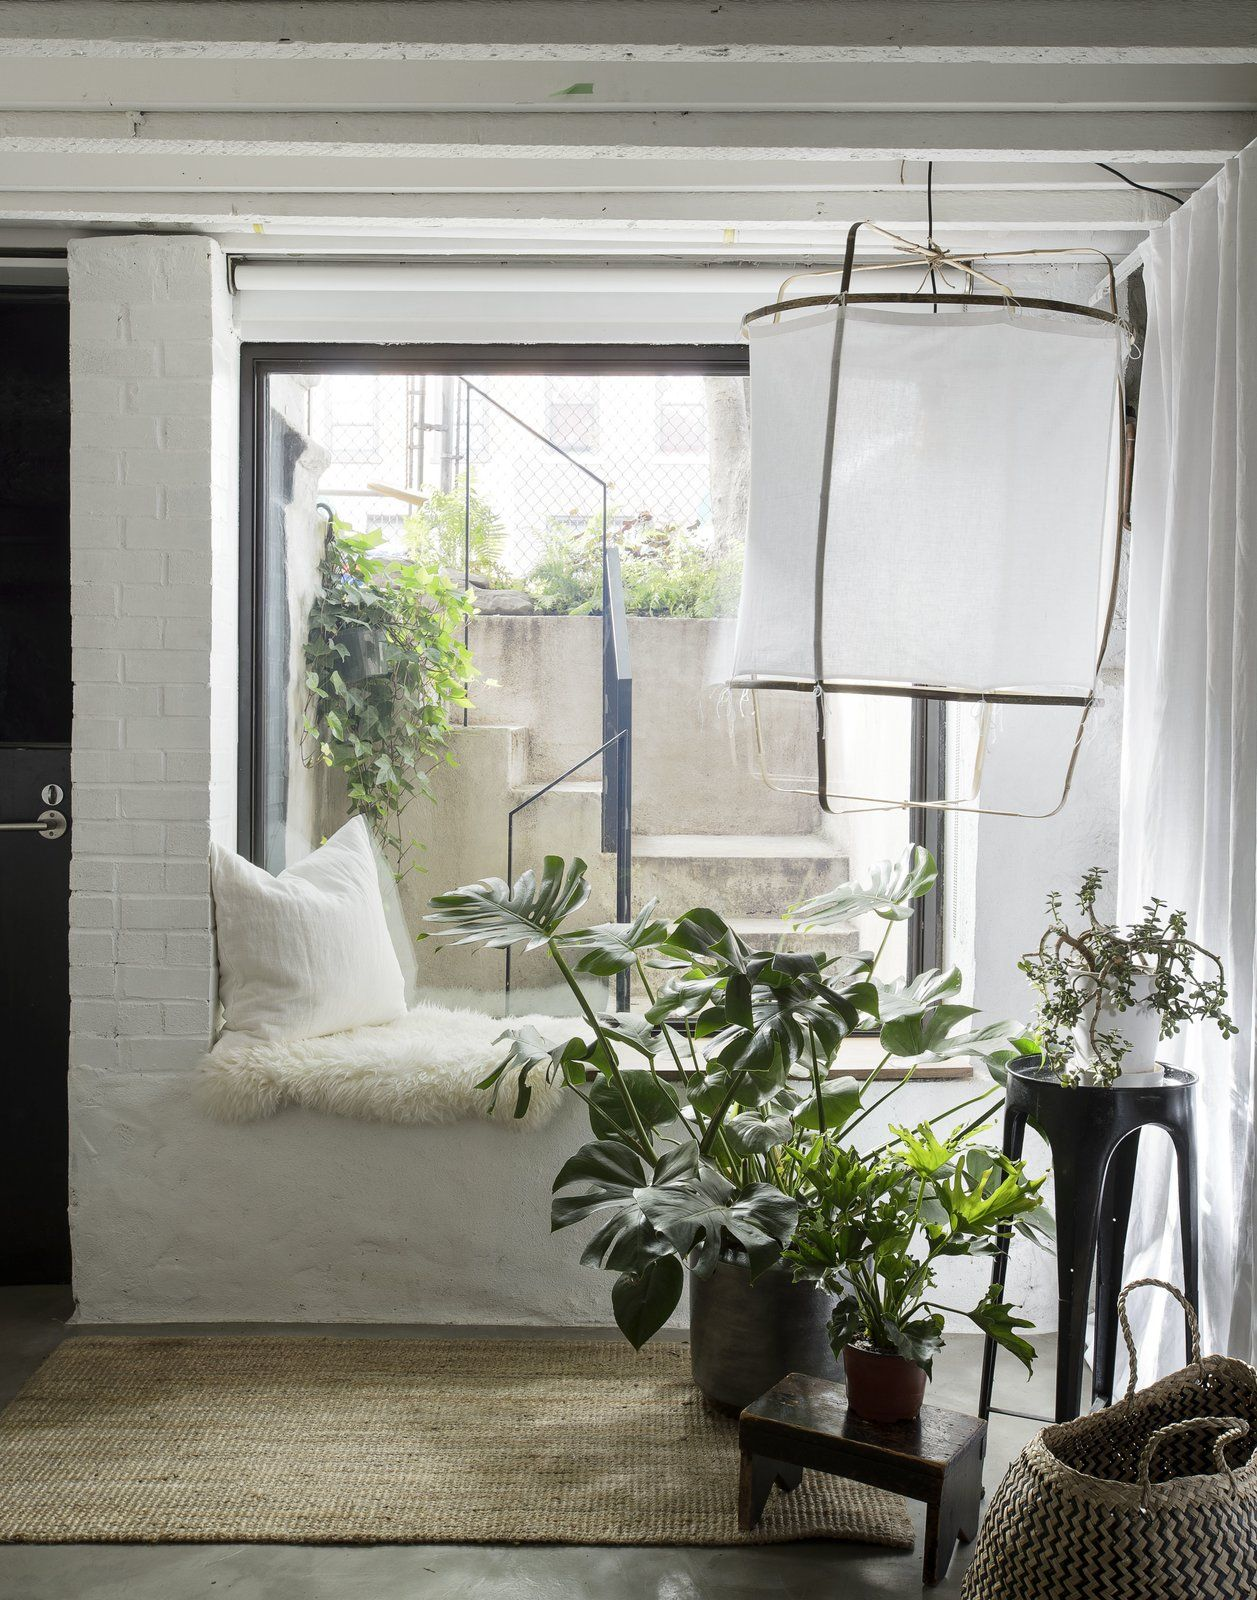 Window nook decorating ideas  pin by heather frasch on ideas for the garden  pinterest  mudroom